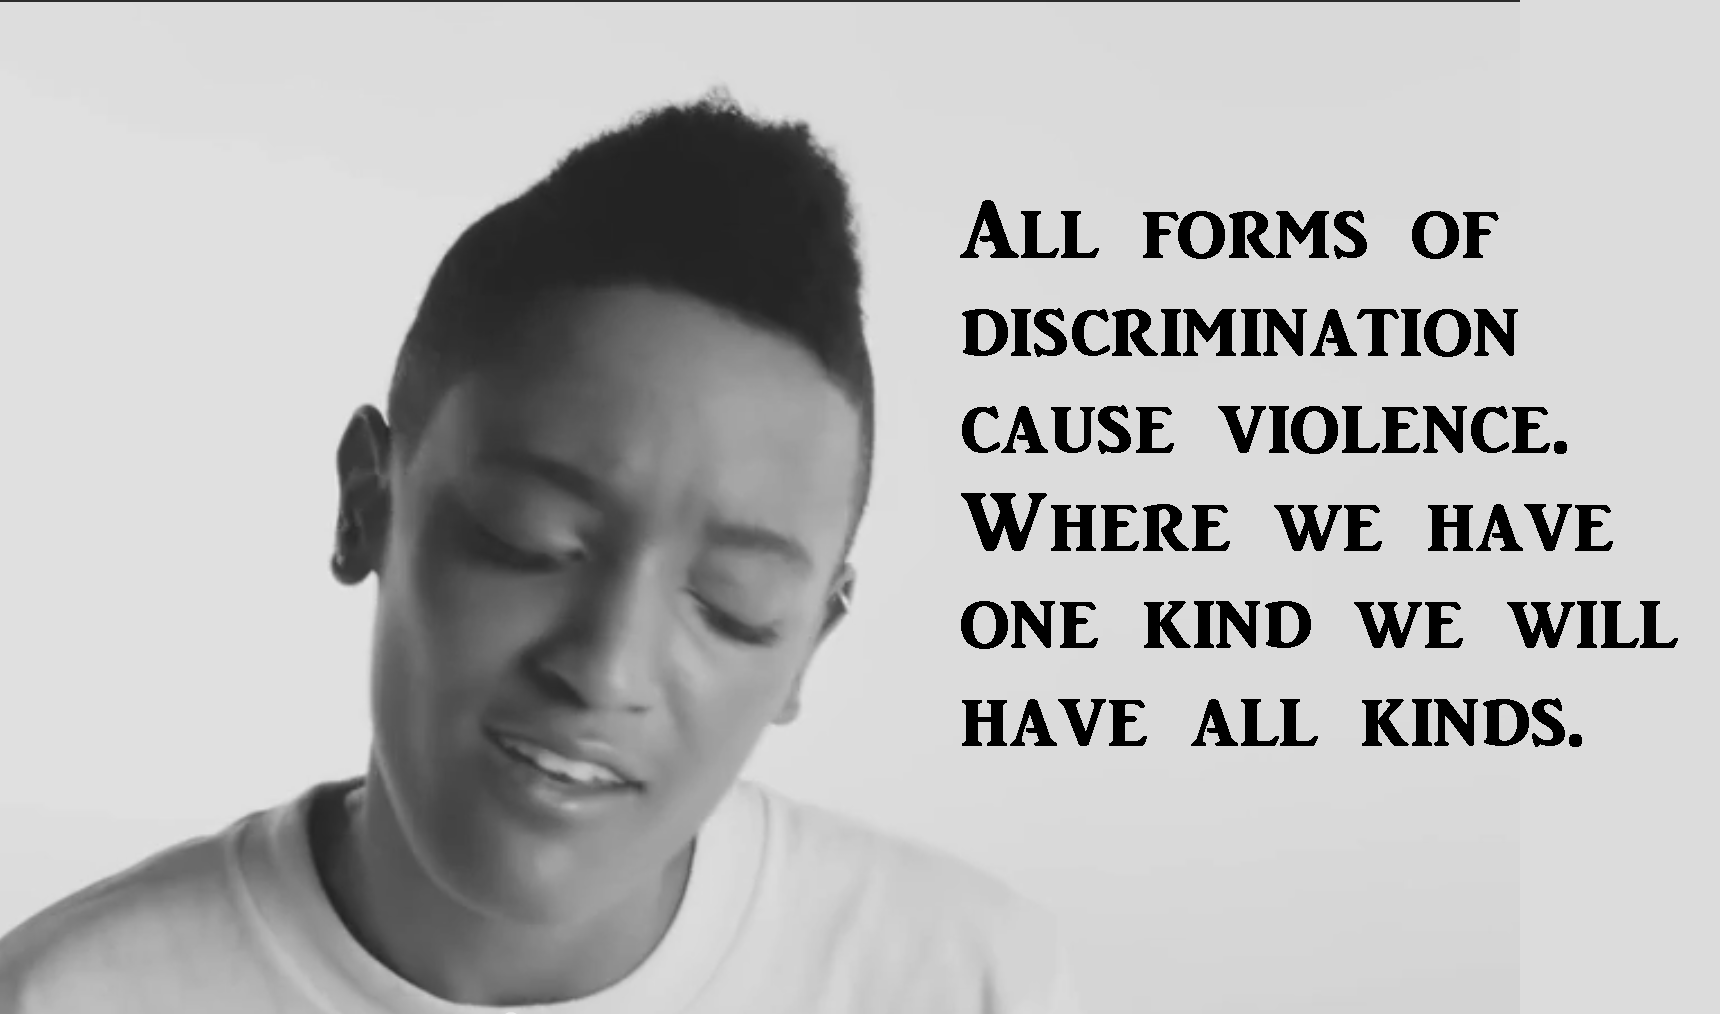 veganism is nonviolence syd tha kid